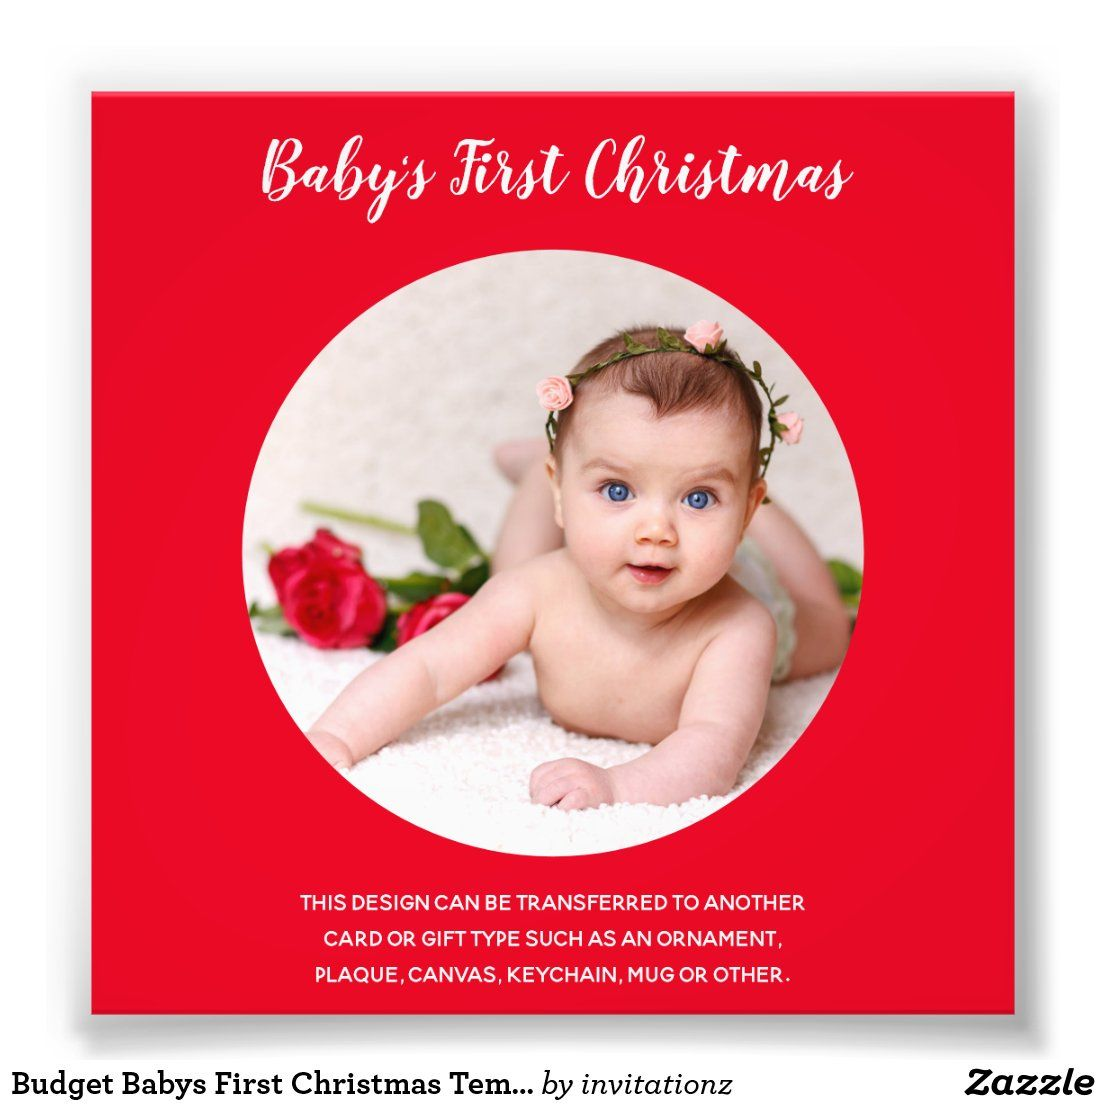 Budget Babys First Christmas Template Invites Photo Print Zazzle Com First Christmas Photos Christmas Templates Christmas Photos